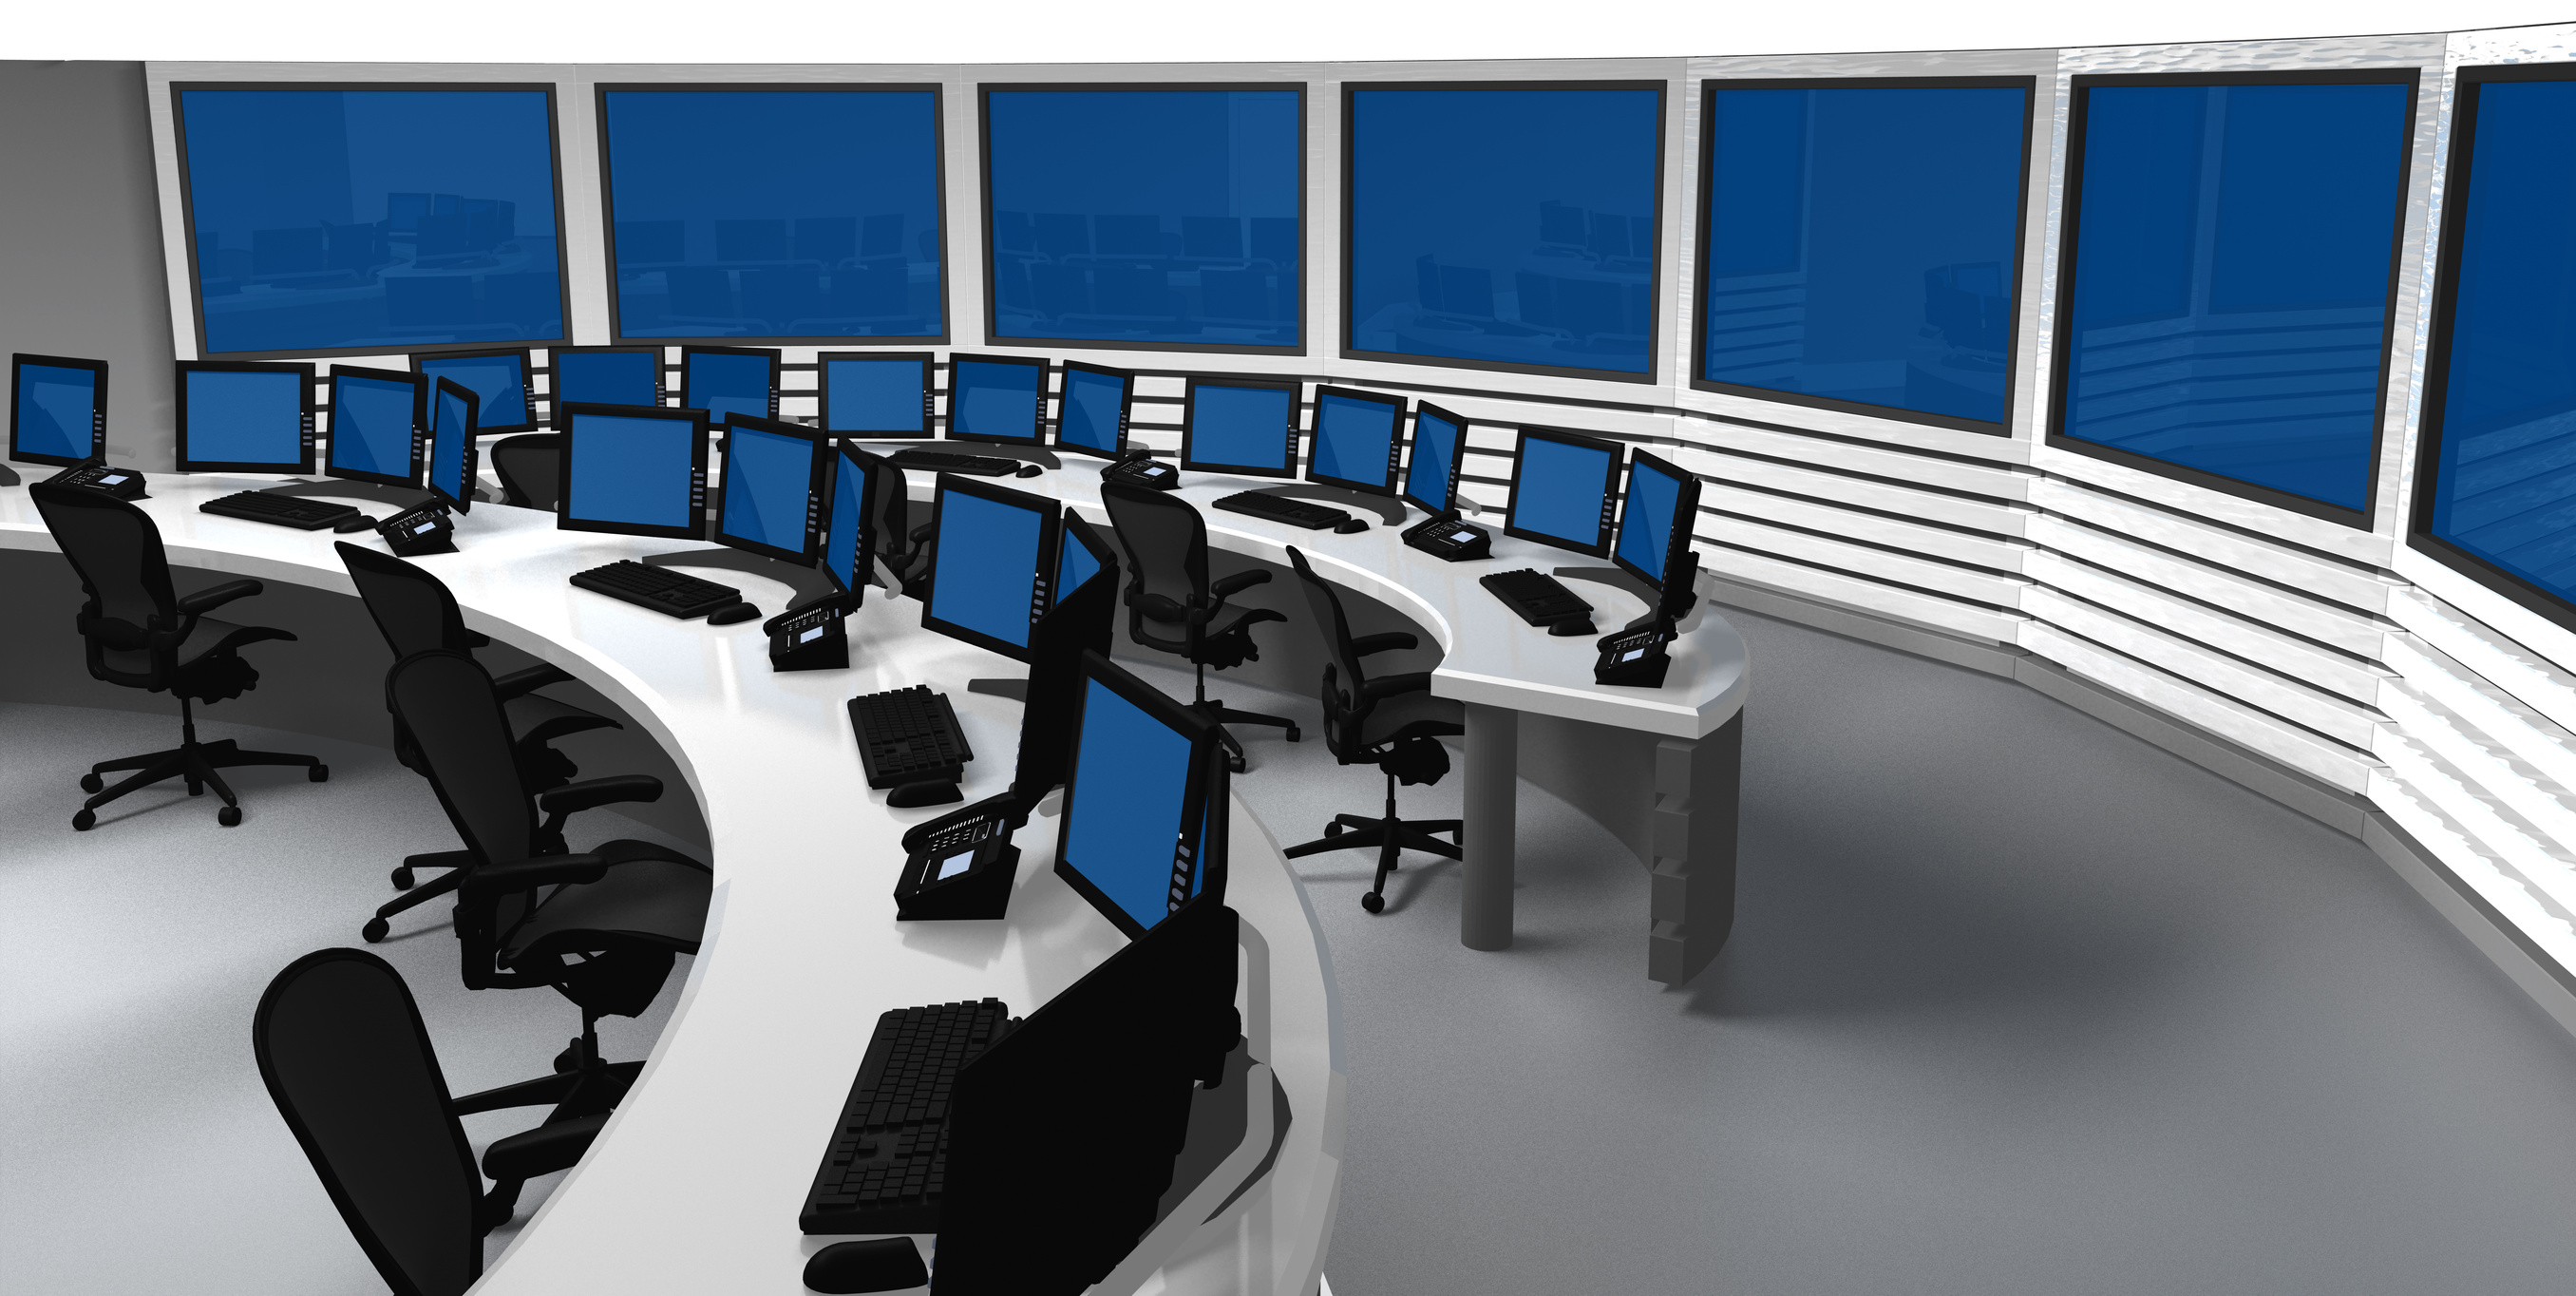 Surveillance control center with several monitors and screens